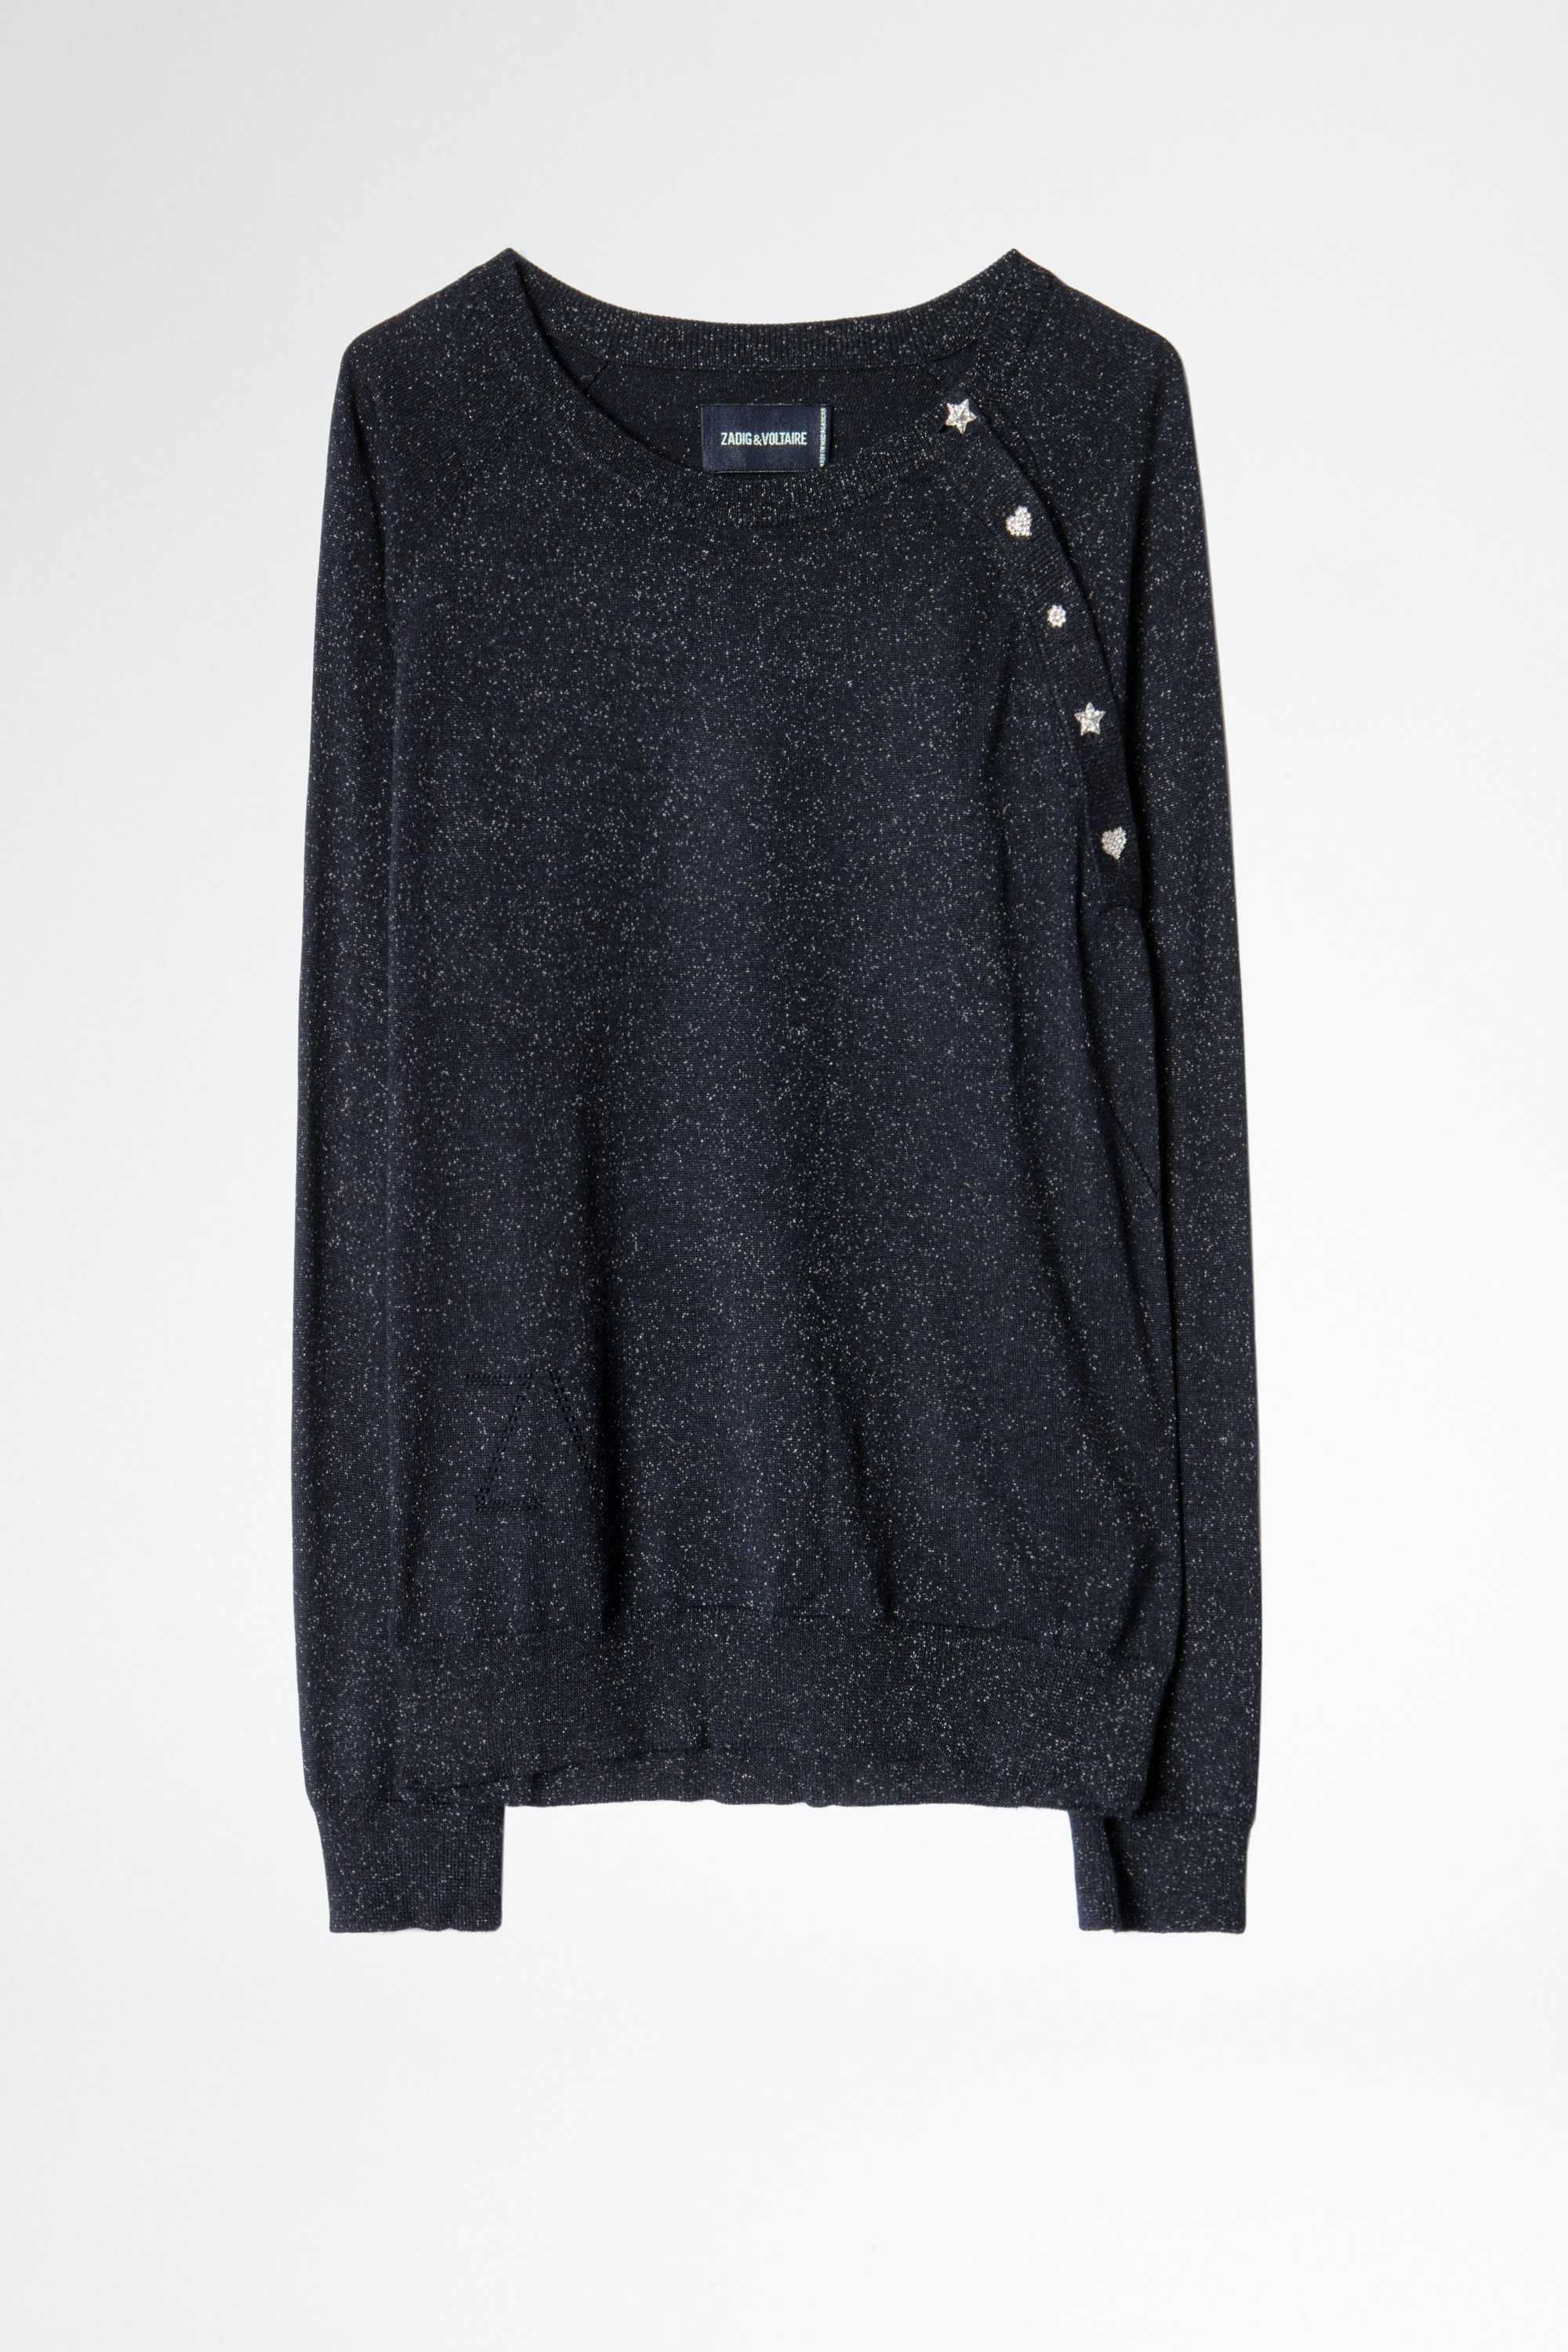 Reglis Lurex Sweater